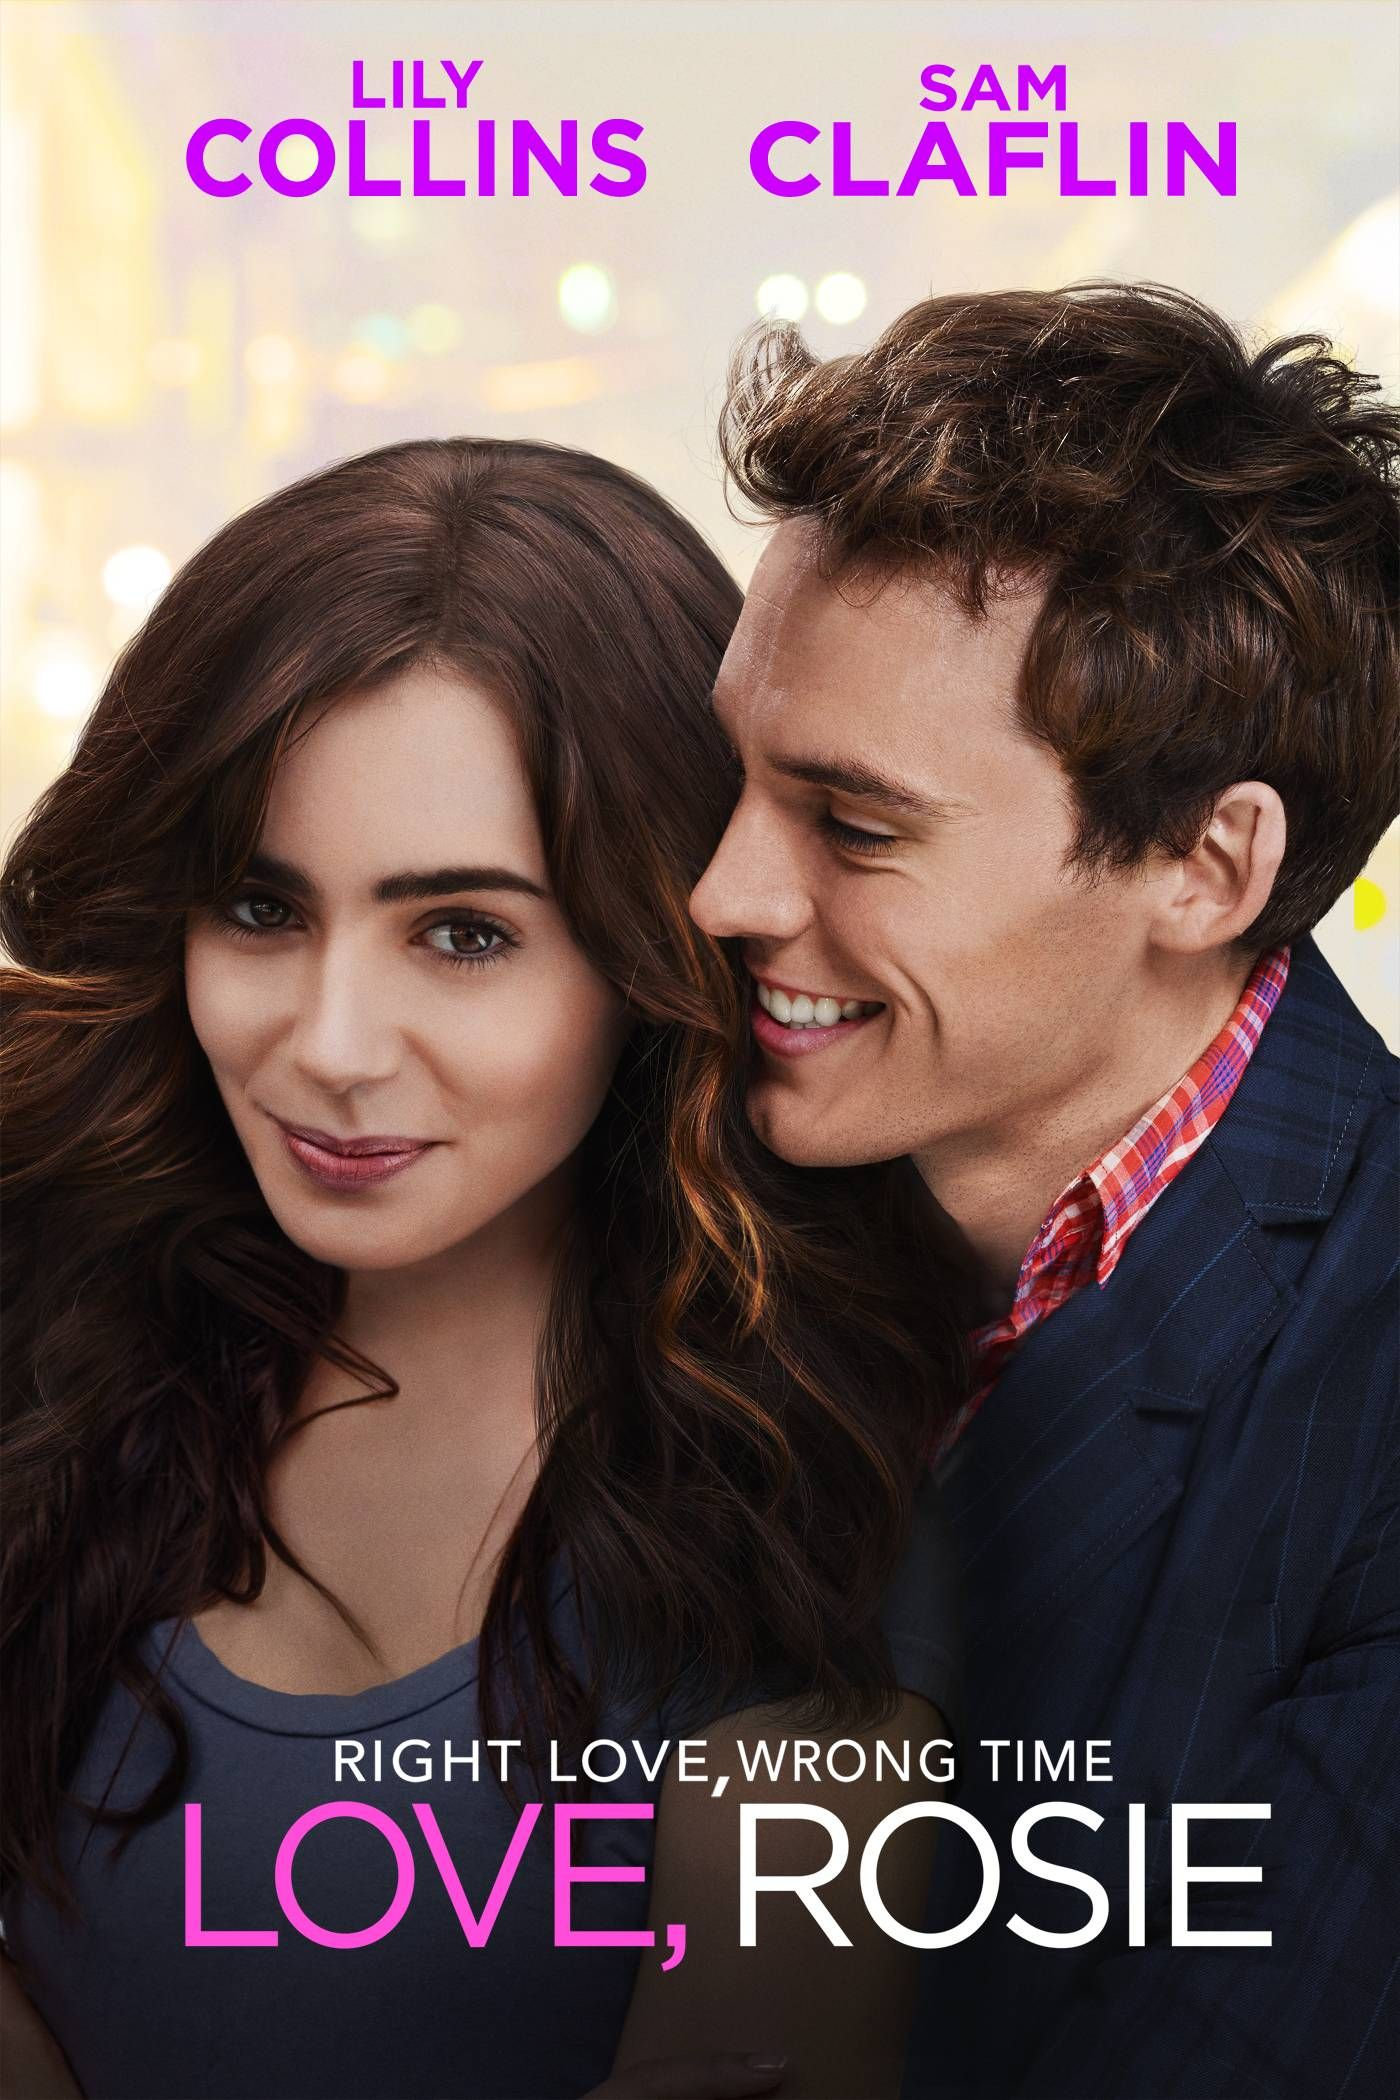 """""""Love, Rosie"""" (2014) movie poster. Lily Collins rom-com."""